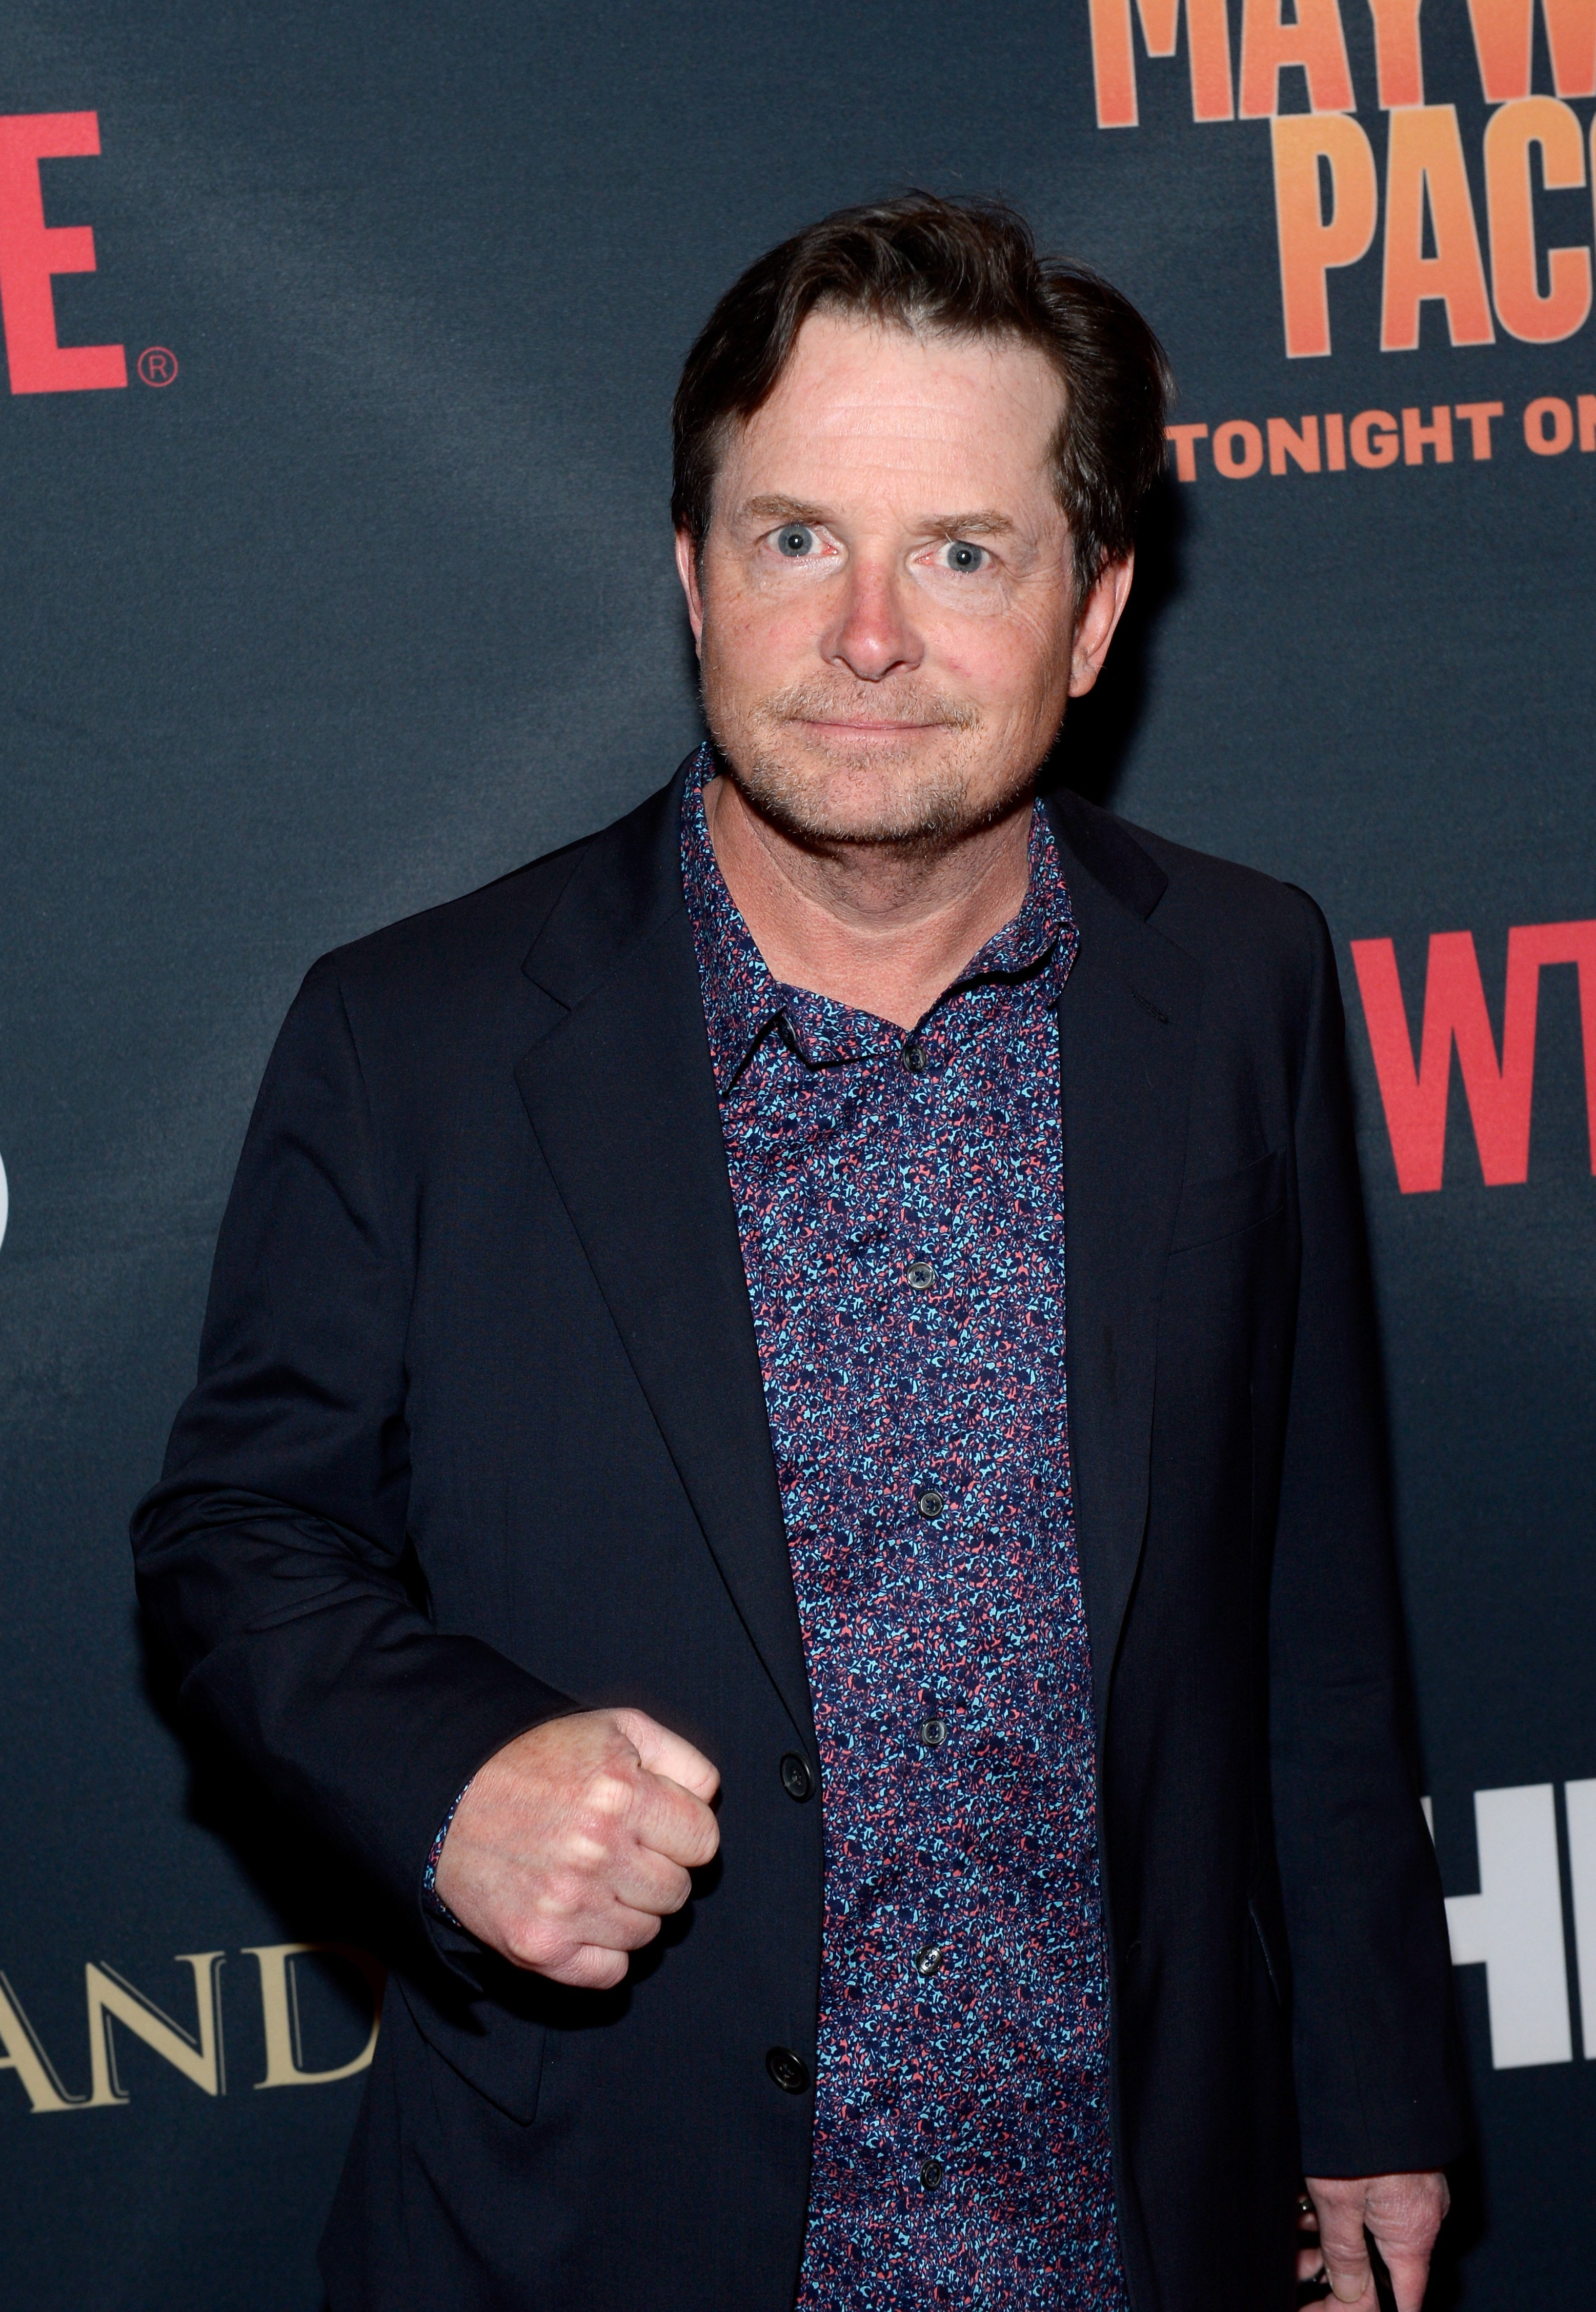 """Michael J. Fox at the SHOWTIME And HBO VIP Pre-Fight Party for """"Mayweather VS Pacquiao"""" at MGM Grand Hotel & Casino on May 2, 2015. 